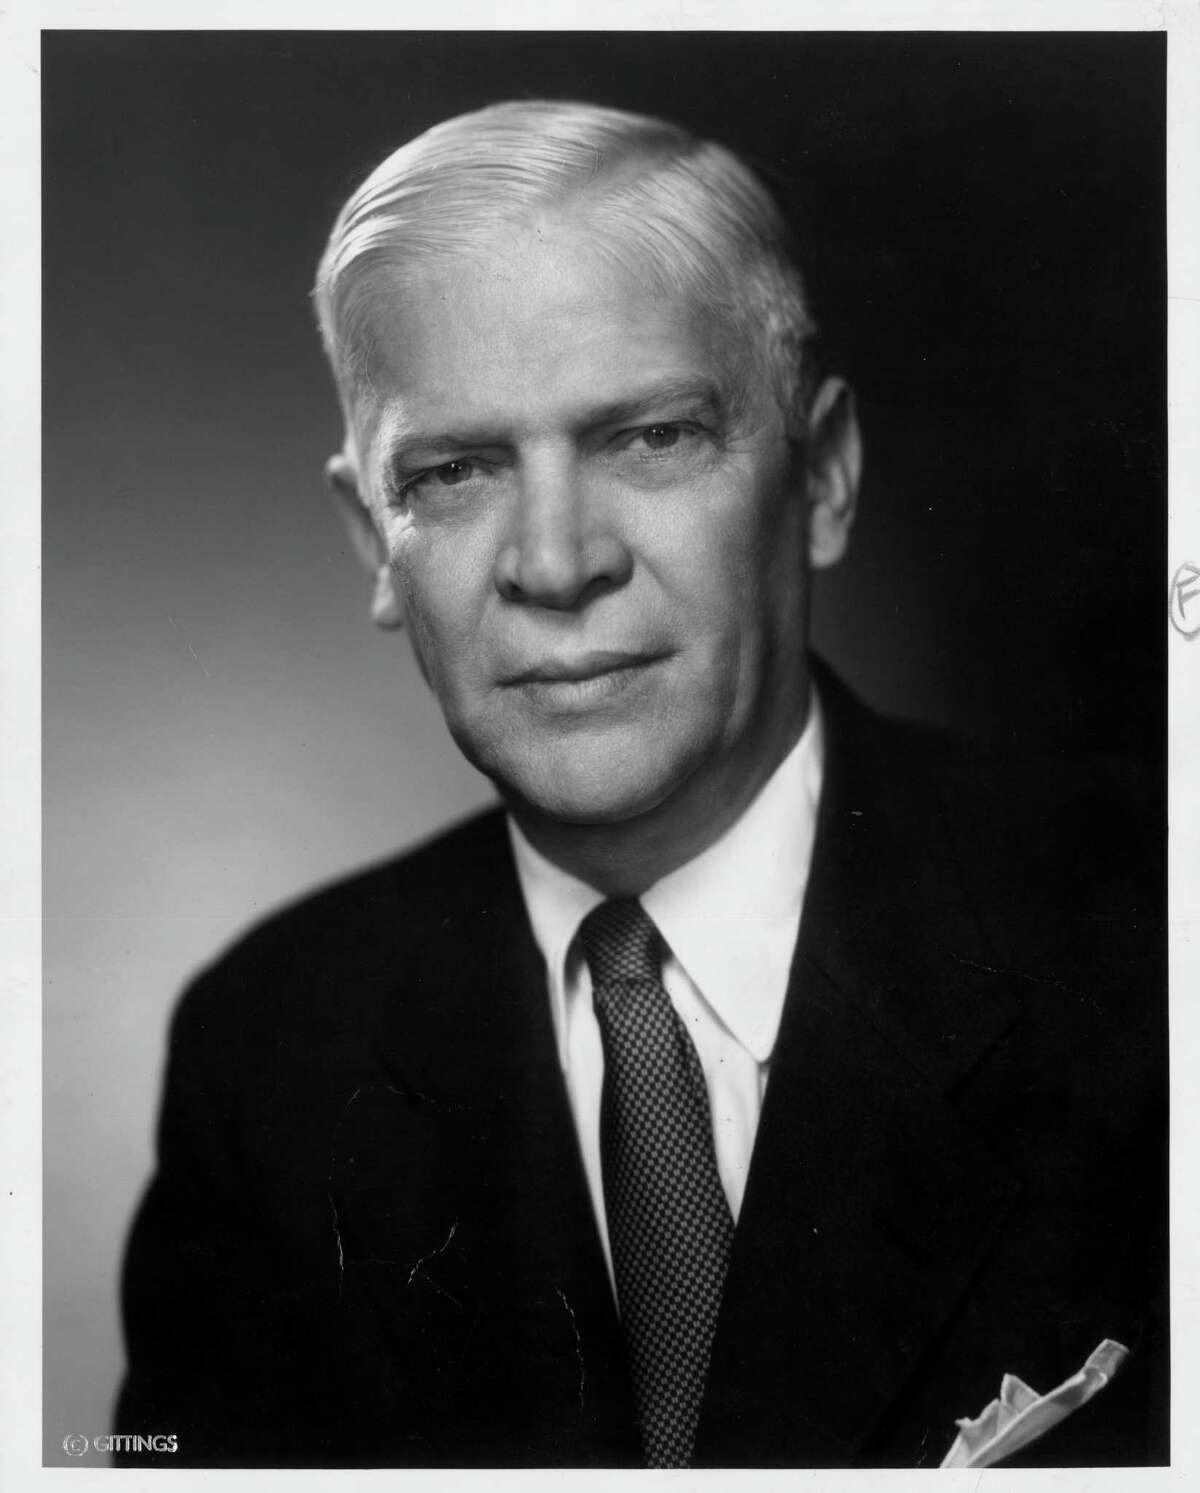 George R. Brown, Executive Vice President of Brown & Root. Photo dated September 1958. HOUCHRON CAPTION (12/12/1999): George R. Brown 1898-1983. HOUSTON CHRONICLE SPECIAL SECTION: THE HOUSTON CENTURY. HOUCHRON CAPTION (11/05/2000): None (George R. Brown Mug) HOUCHRON CAPTION (11/05/2000): George R. Brown in 1958 HOUSTON CHRONICLE SPECIAL SECTION/TEXAS MAGAZINE: 100 TALL TEXANS. HOUCHRON CAPTION (12/19/2002): George Brown.